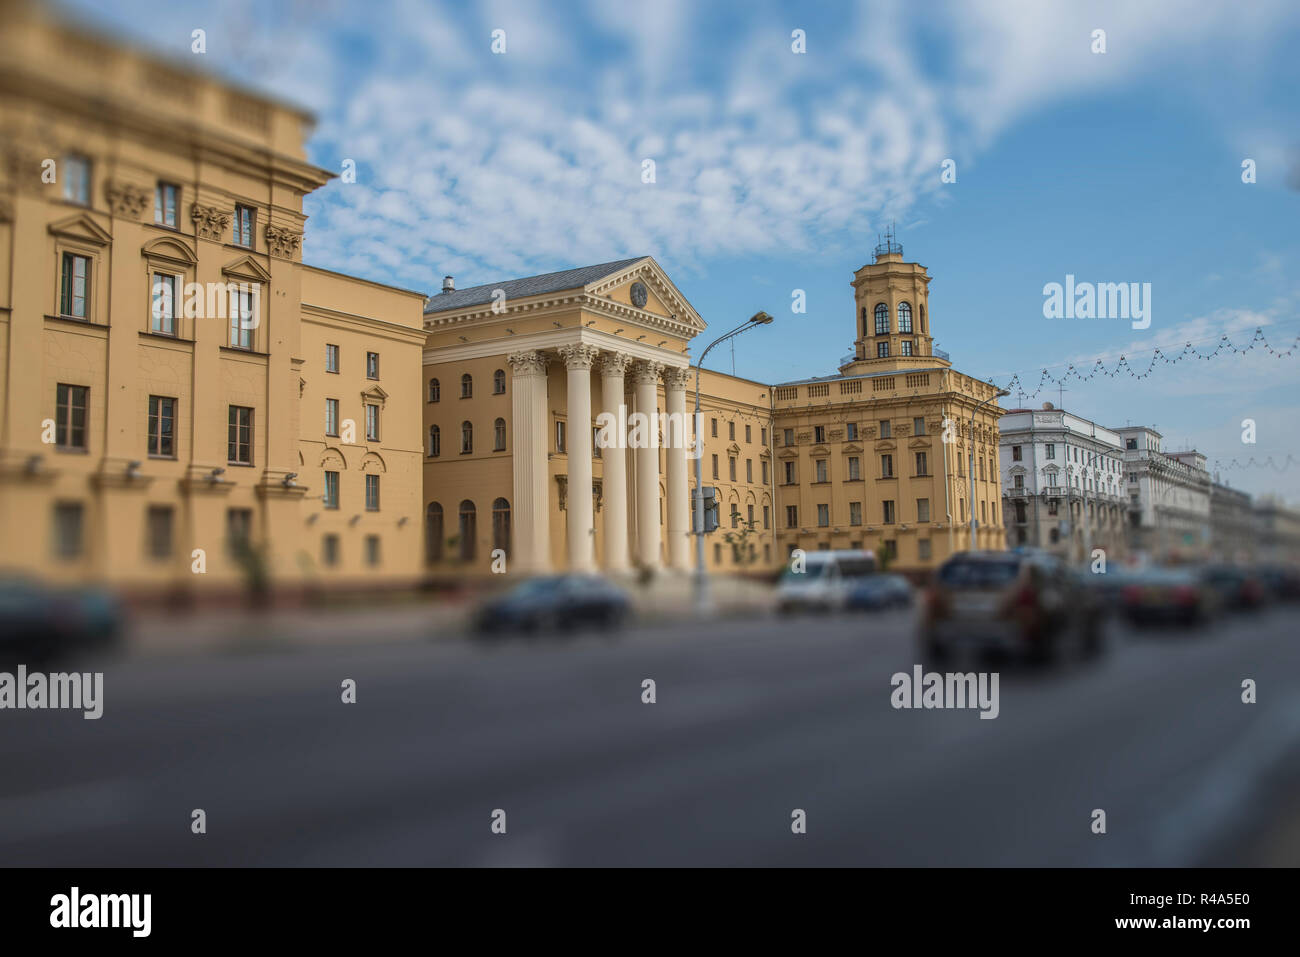 KGB building in the center of the city of Minsk. Belarus. - Stock Image